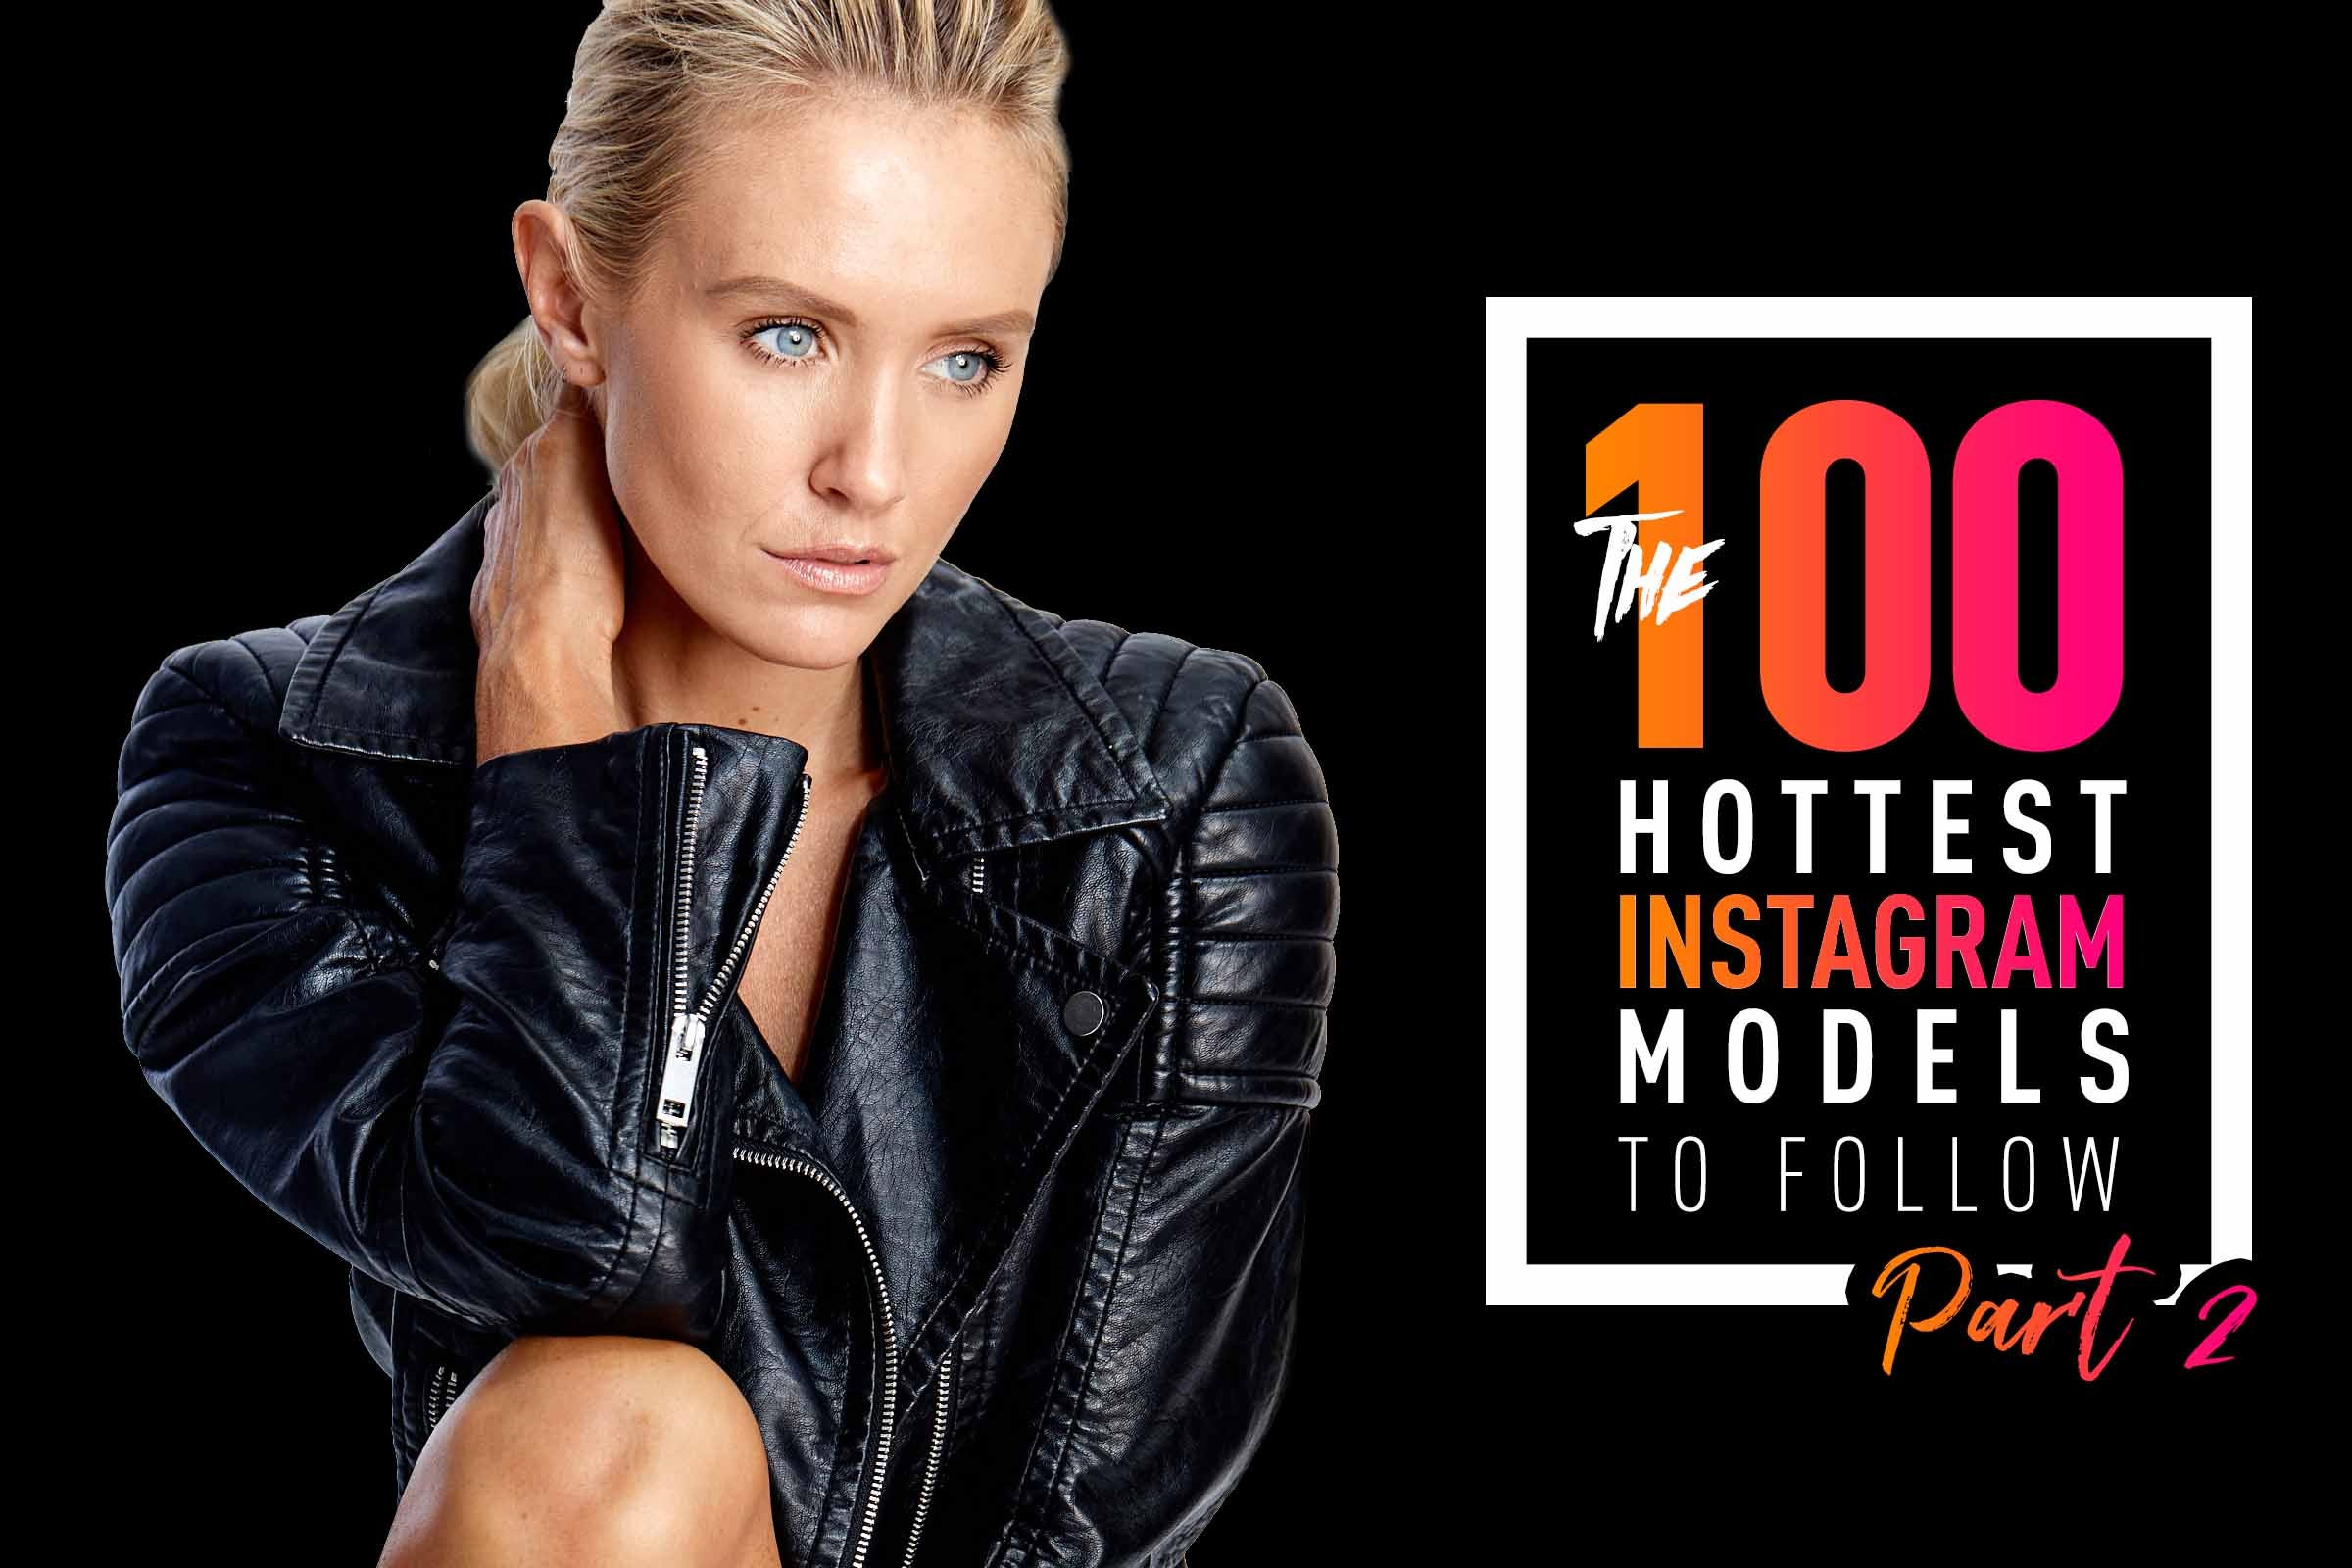 100 Hottest Instagram Models to Follow - Part 2 - SWAGGER Magazine